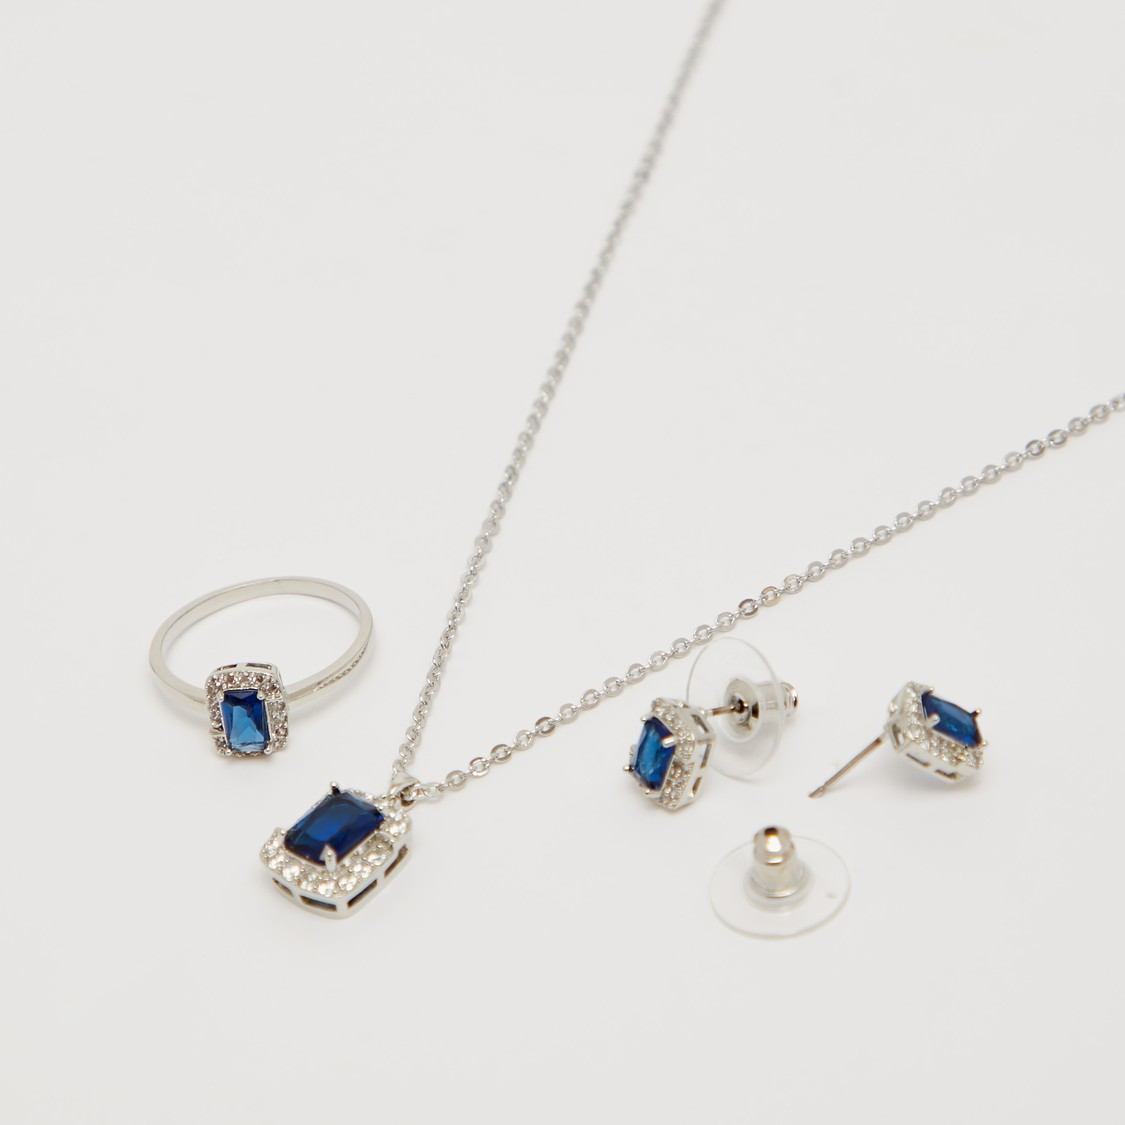 Embellished Pendant Necklace and Earring Set